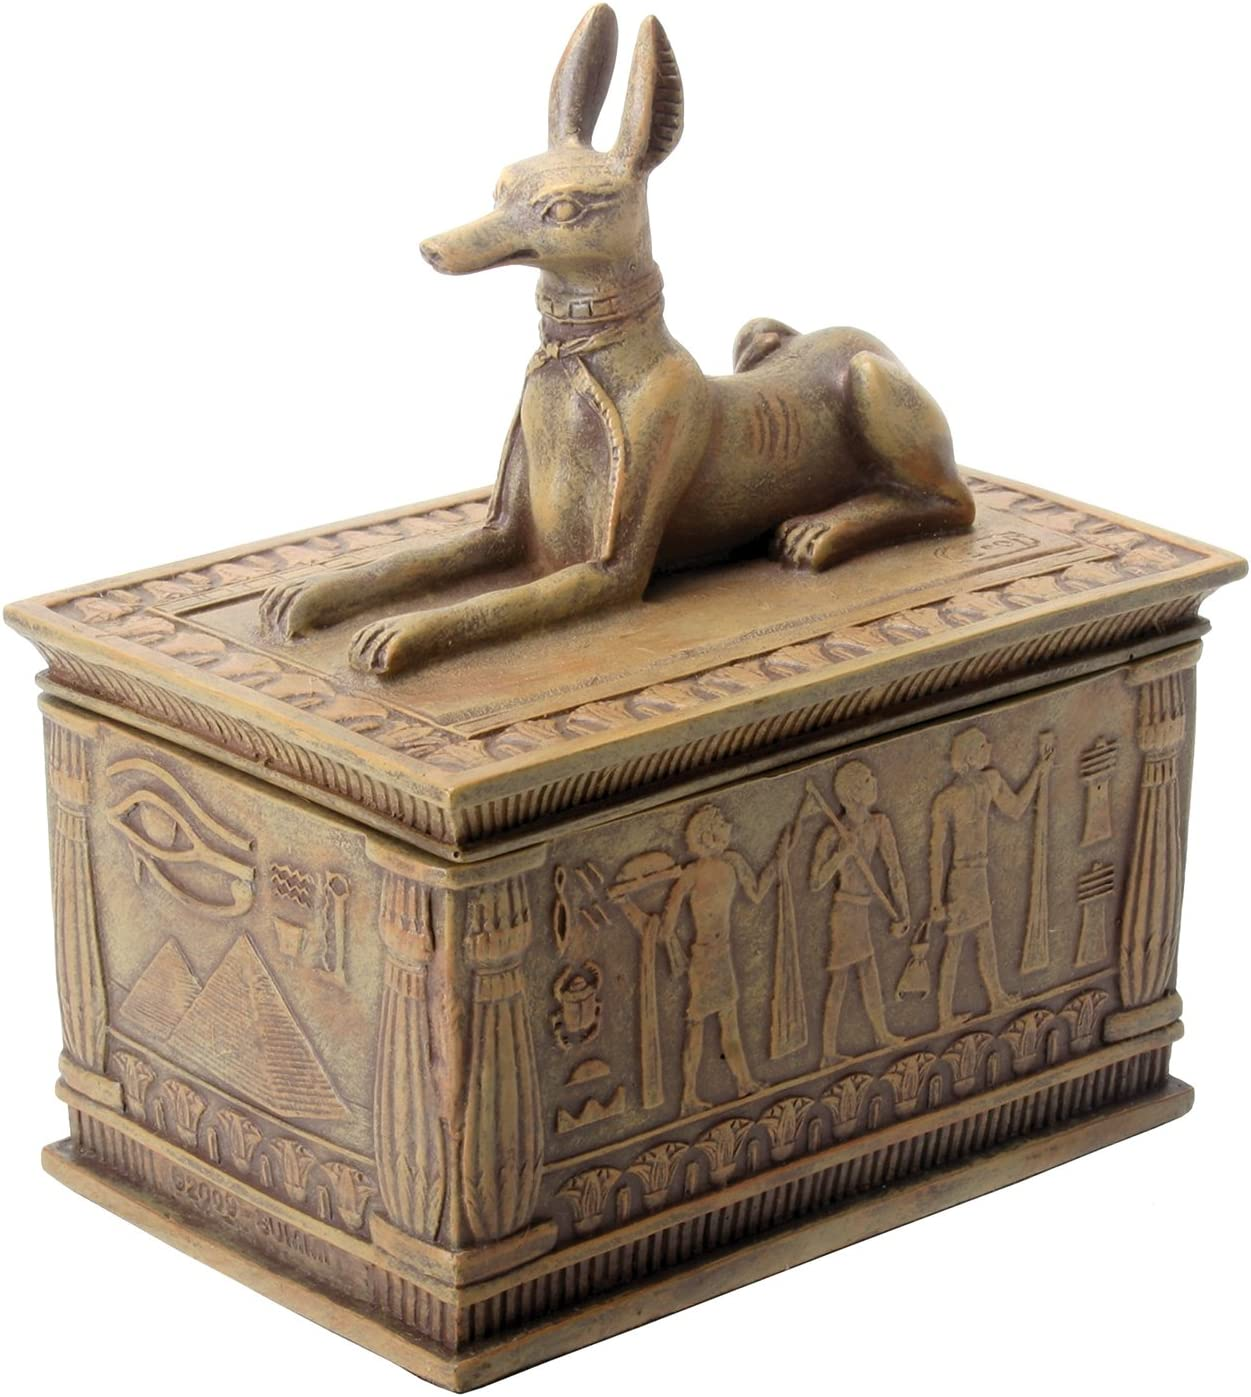 SUMMIT BY WHITE MOUNTAIN Sandstone Colored Anubis Box with Egyptian Detail Bottom Designs